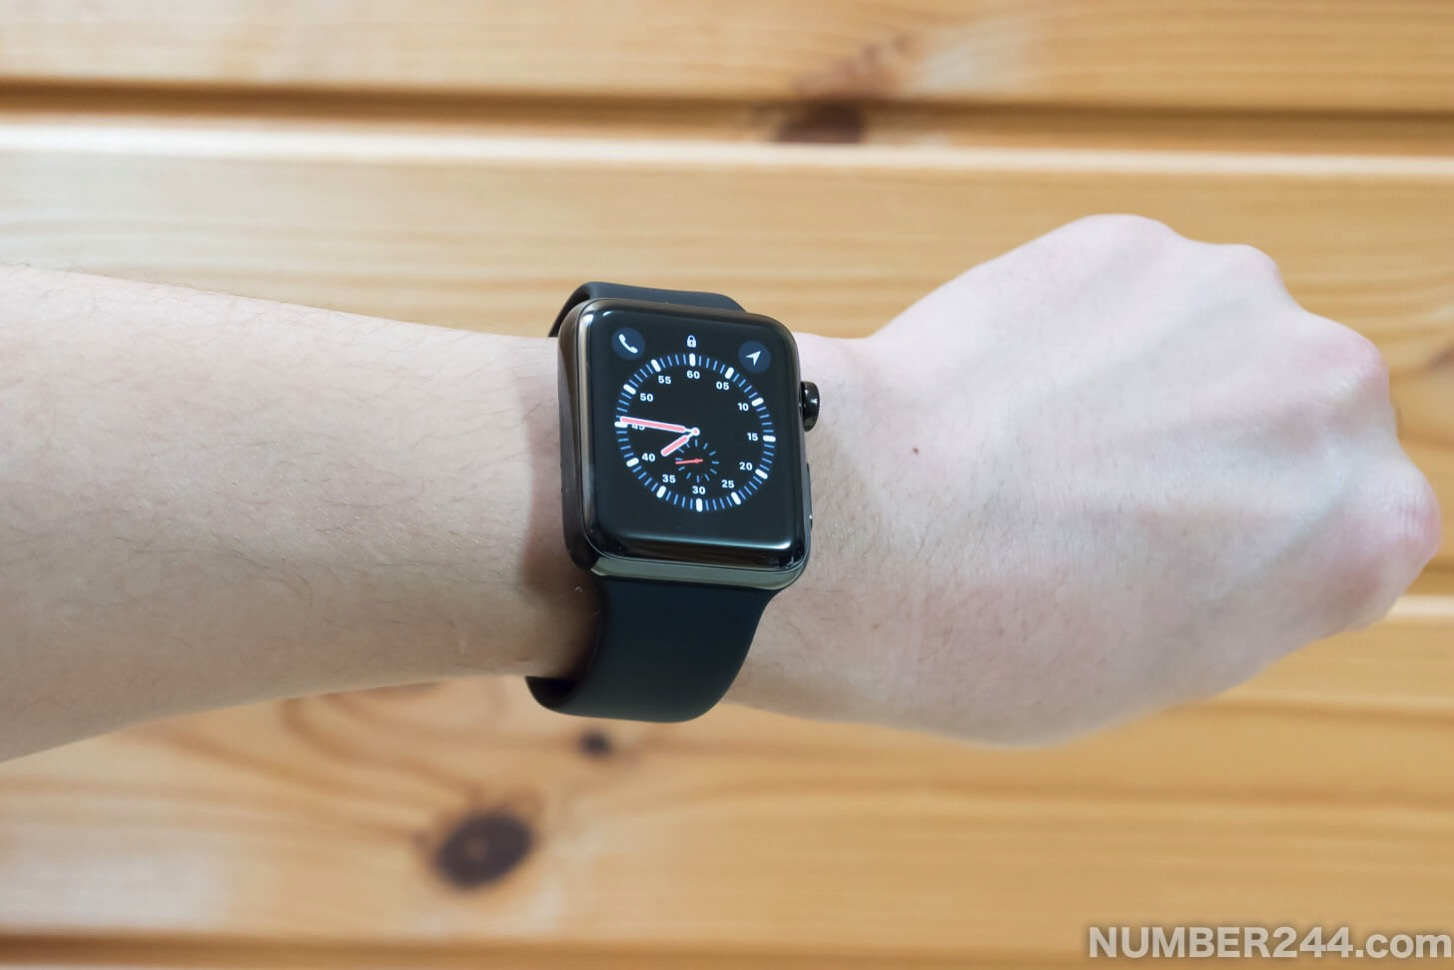 Initial setting of Apple Watch 27